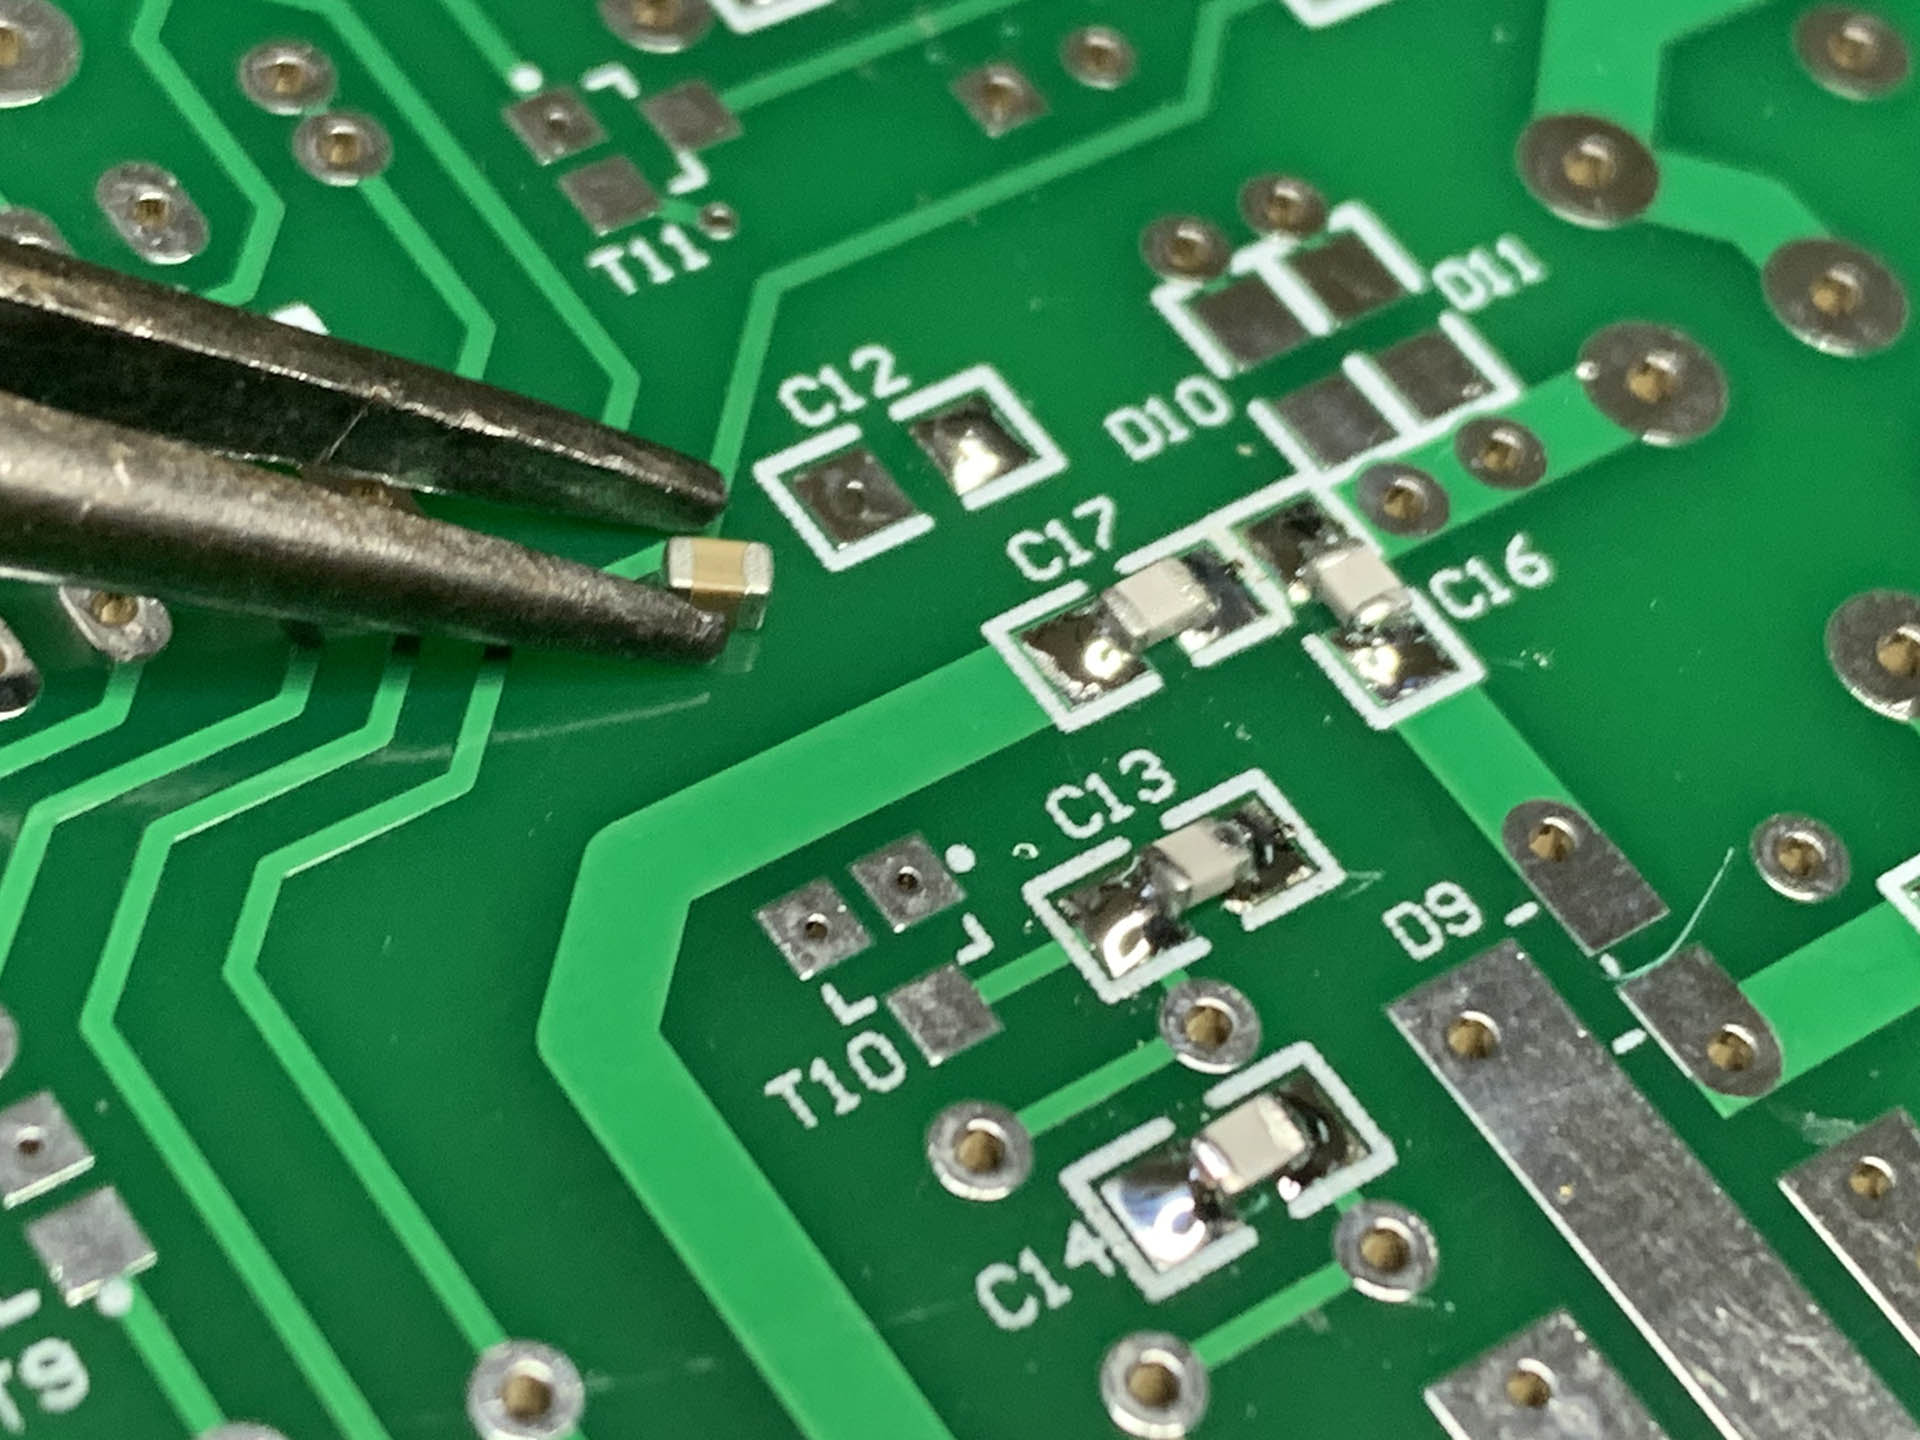 The small SMD components on the Minikits EME166 sequencer